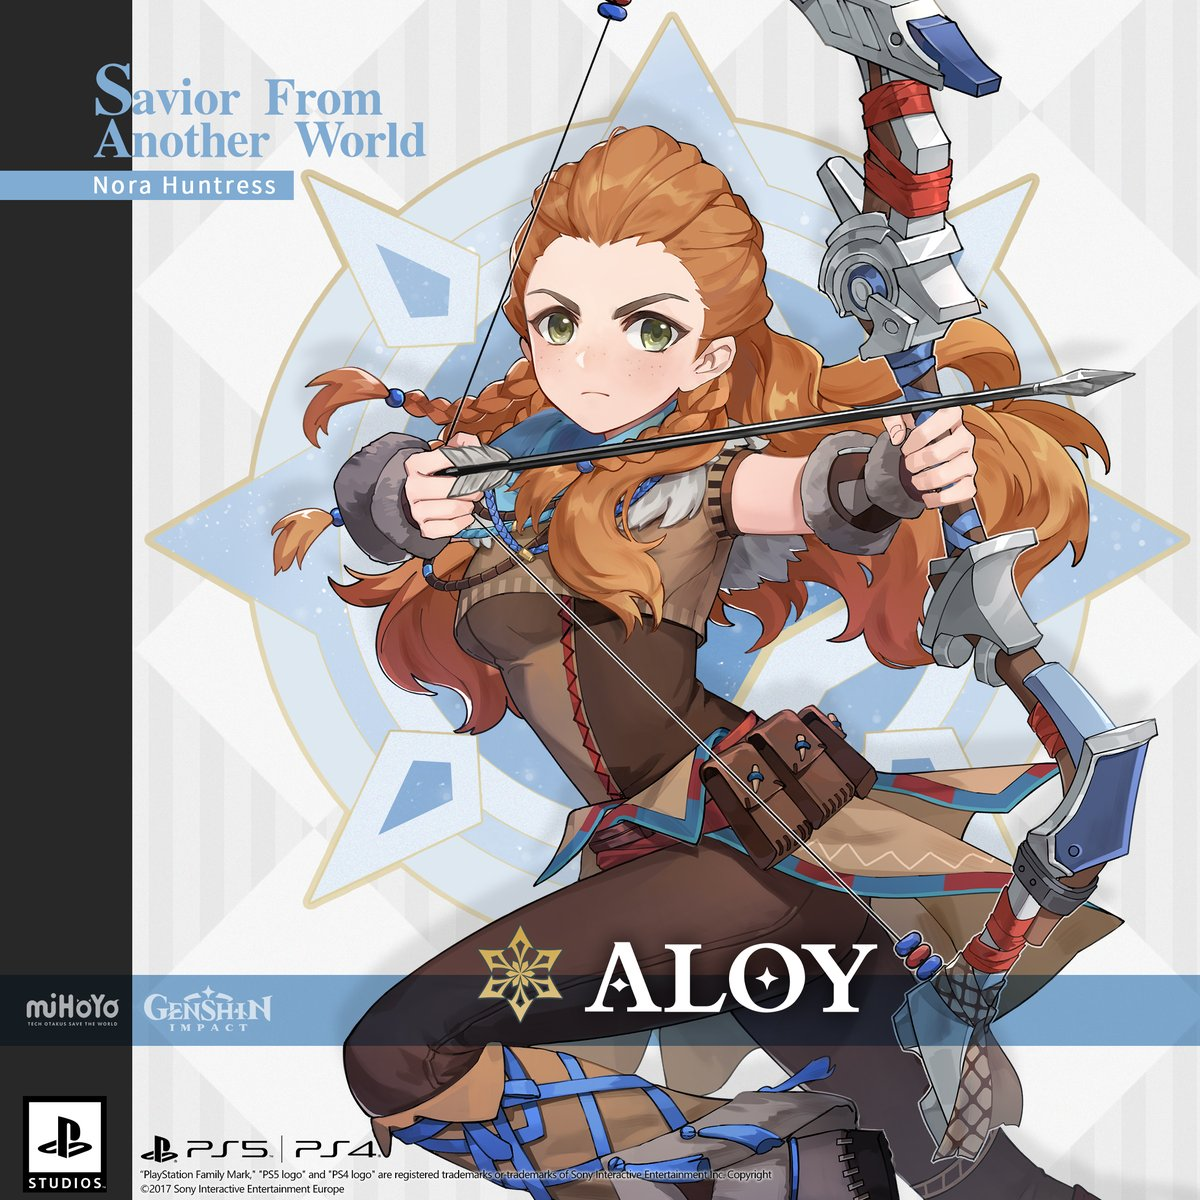 """""""Everything I do is in the service of life, not death. That's why I'm here with you.""""  #Aloy Savior From Another World Nora Huntress Cryo Nora Fortis  Travelers, let's welcome Aloy – """"Savior From Another World!""""  #GenshinImpact"""